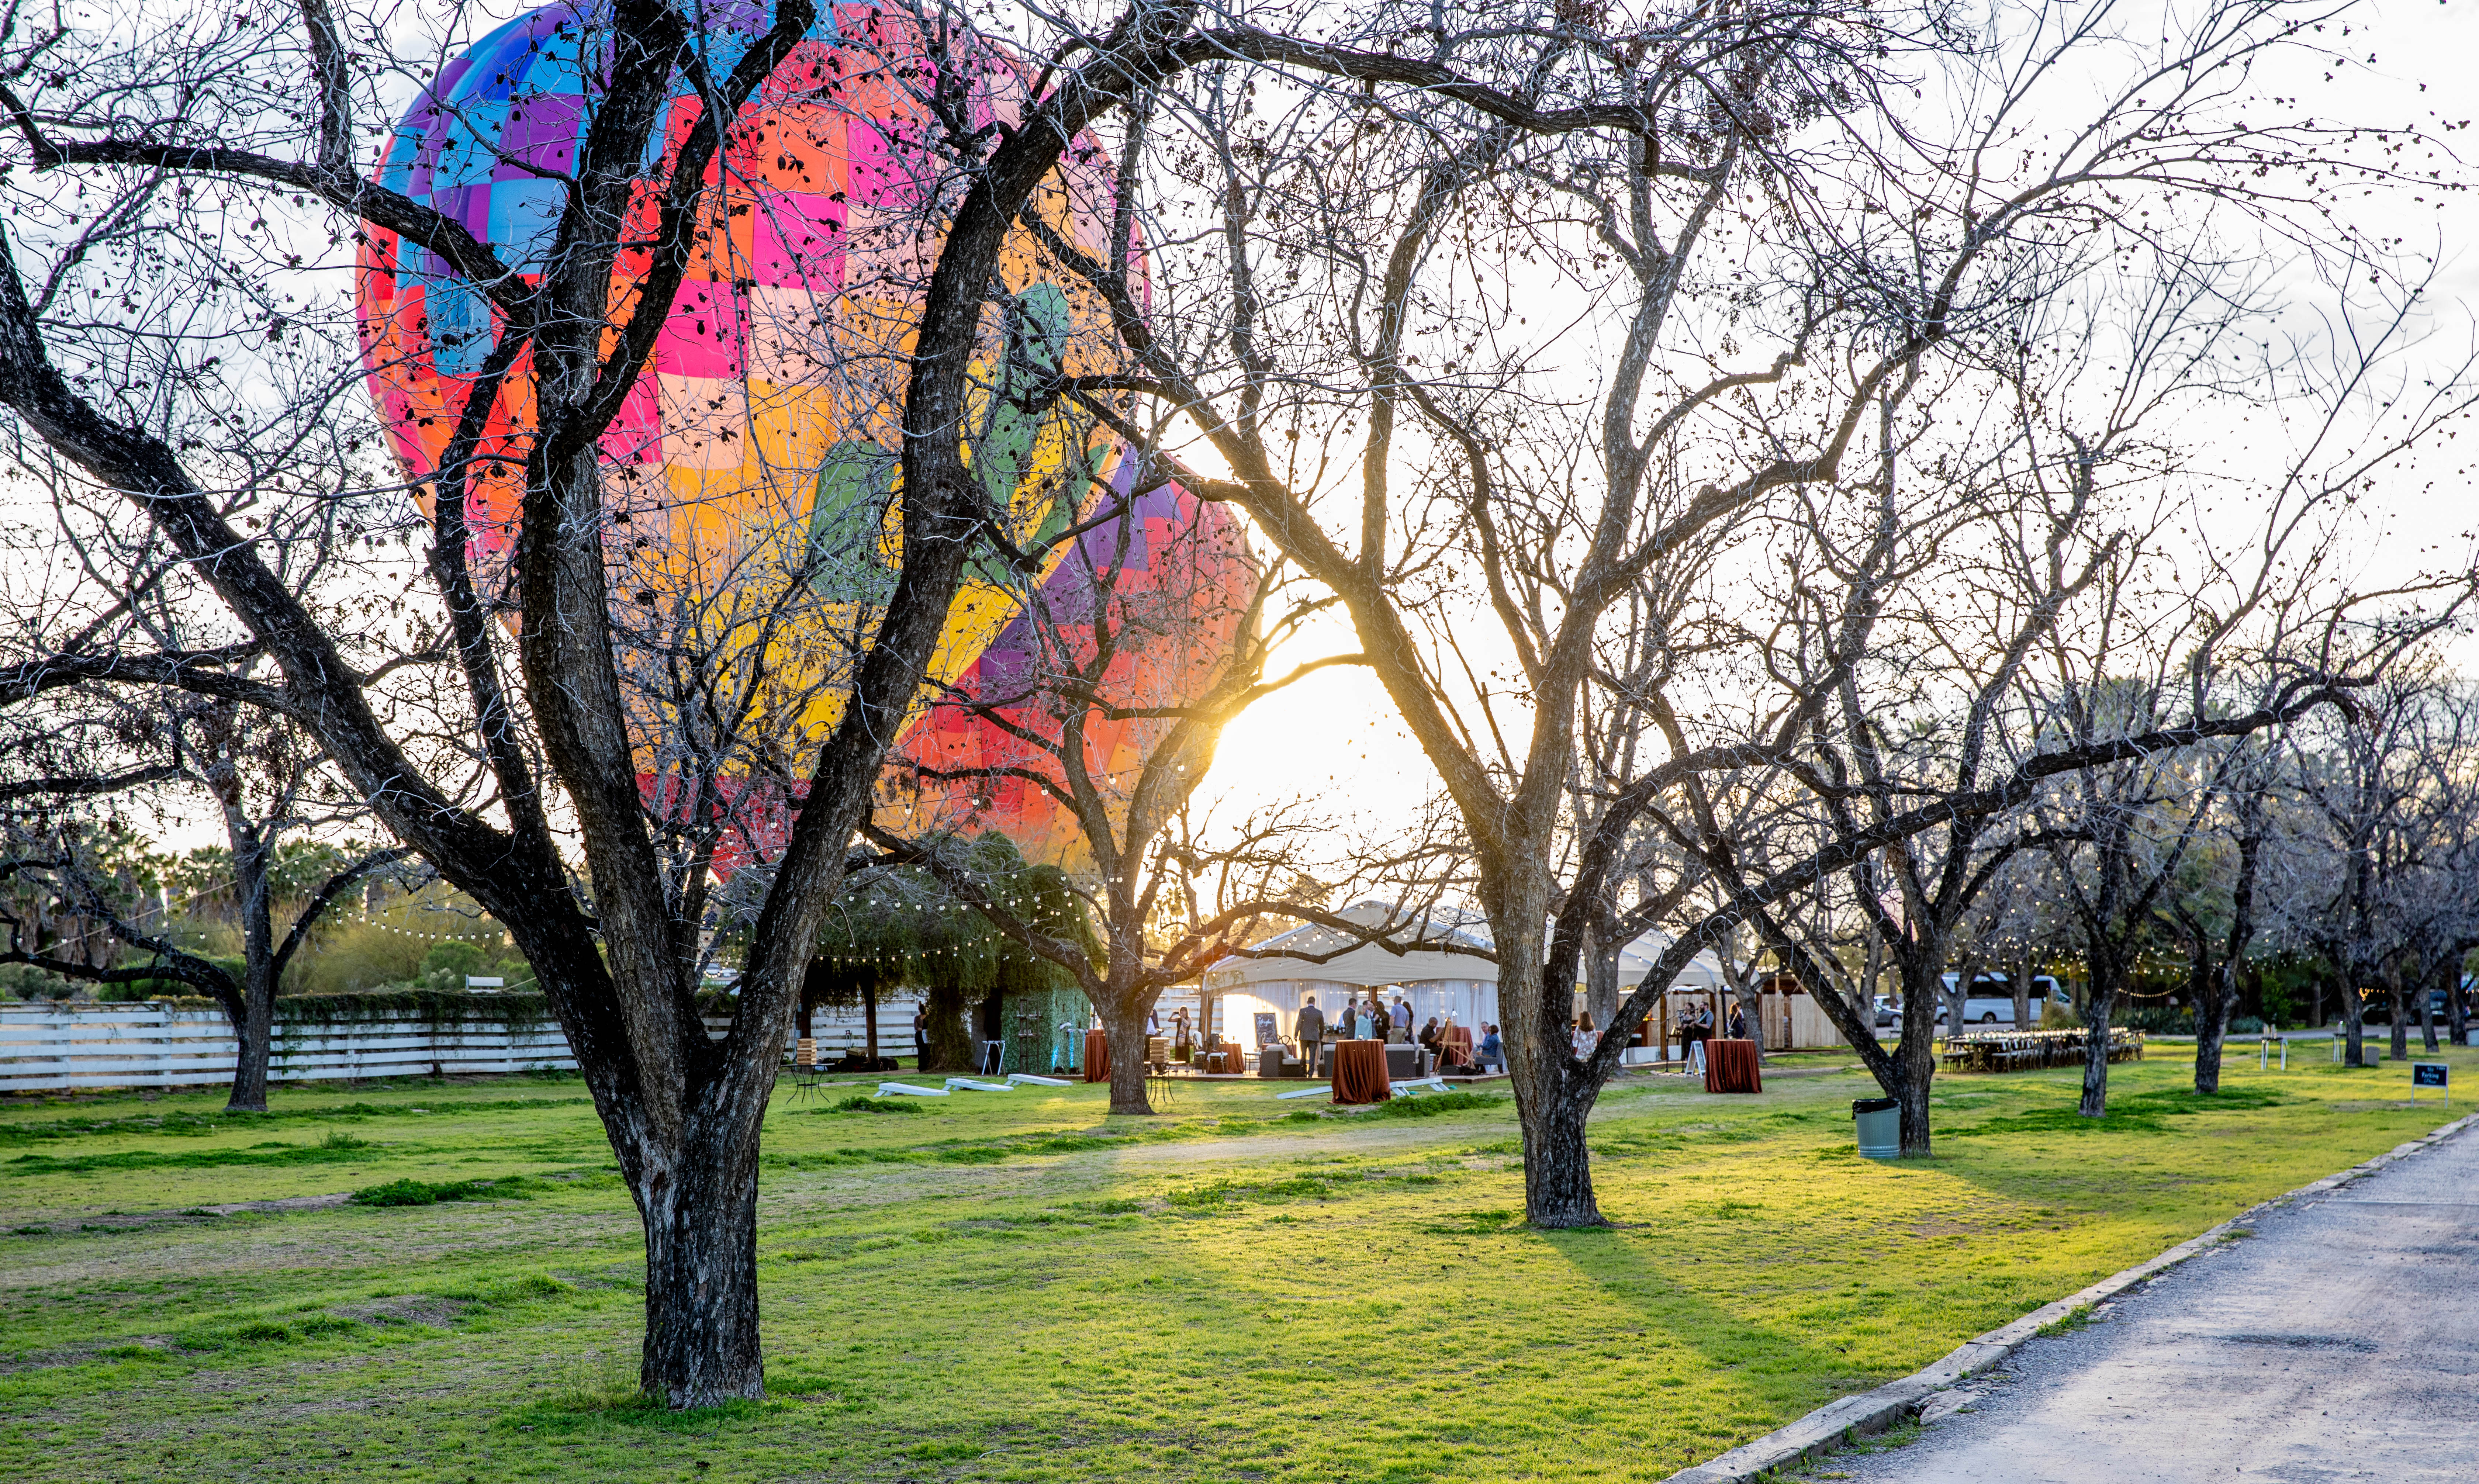 two colorful hot air balloons in a park aribella photography event pictures